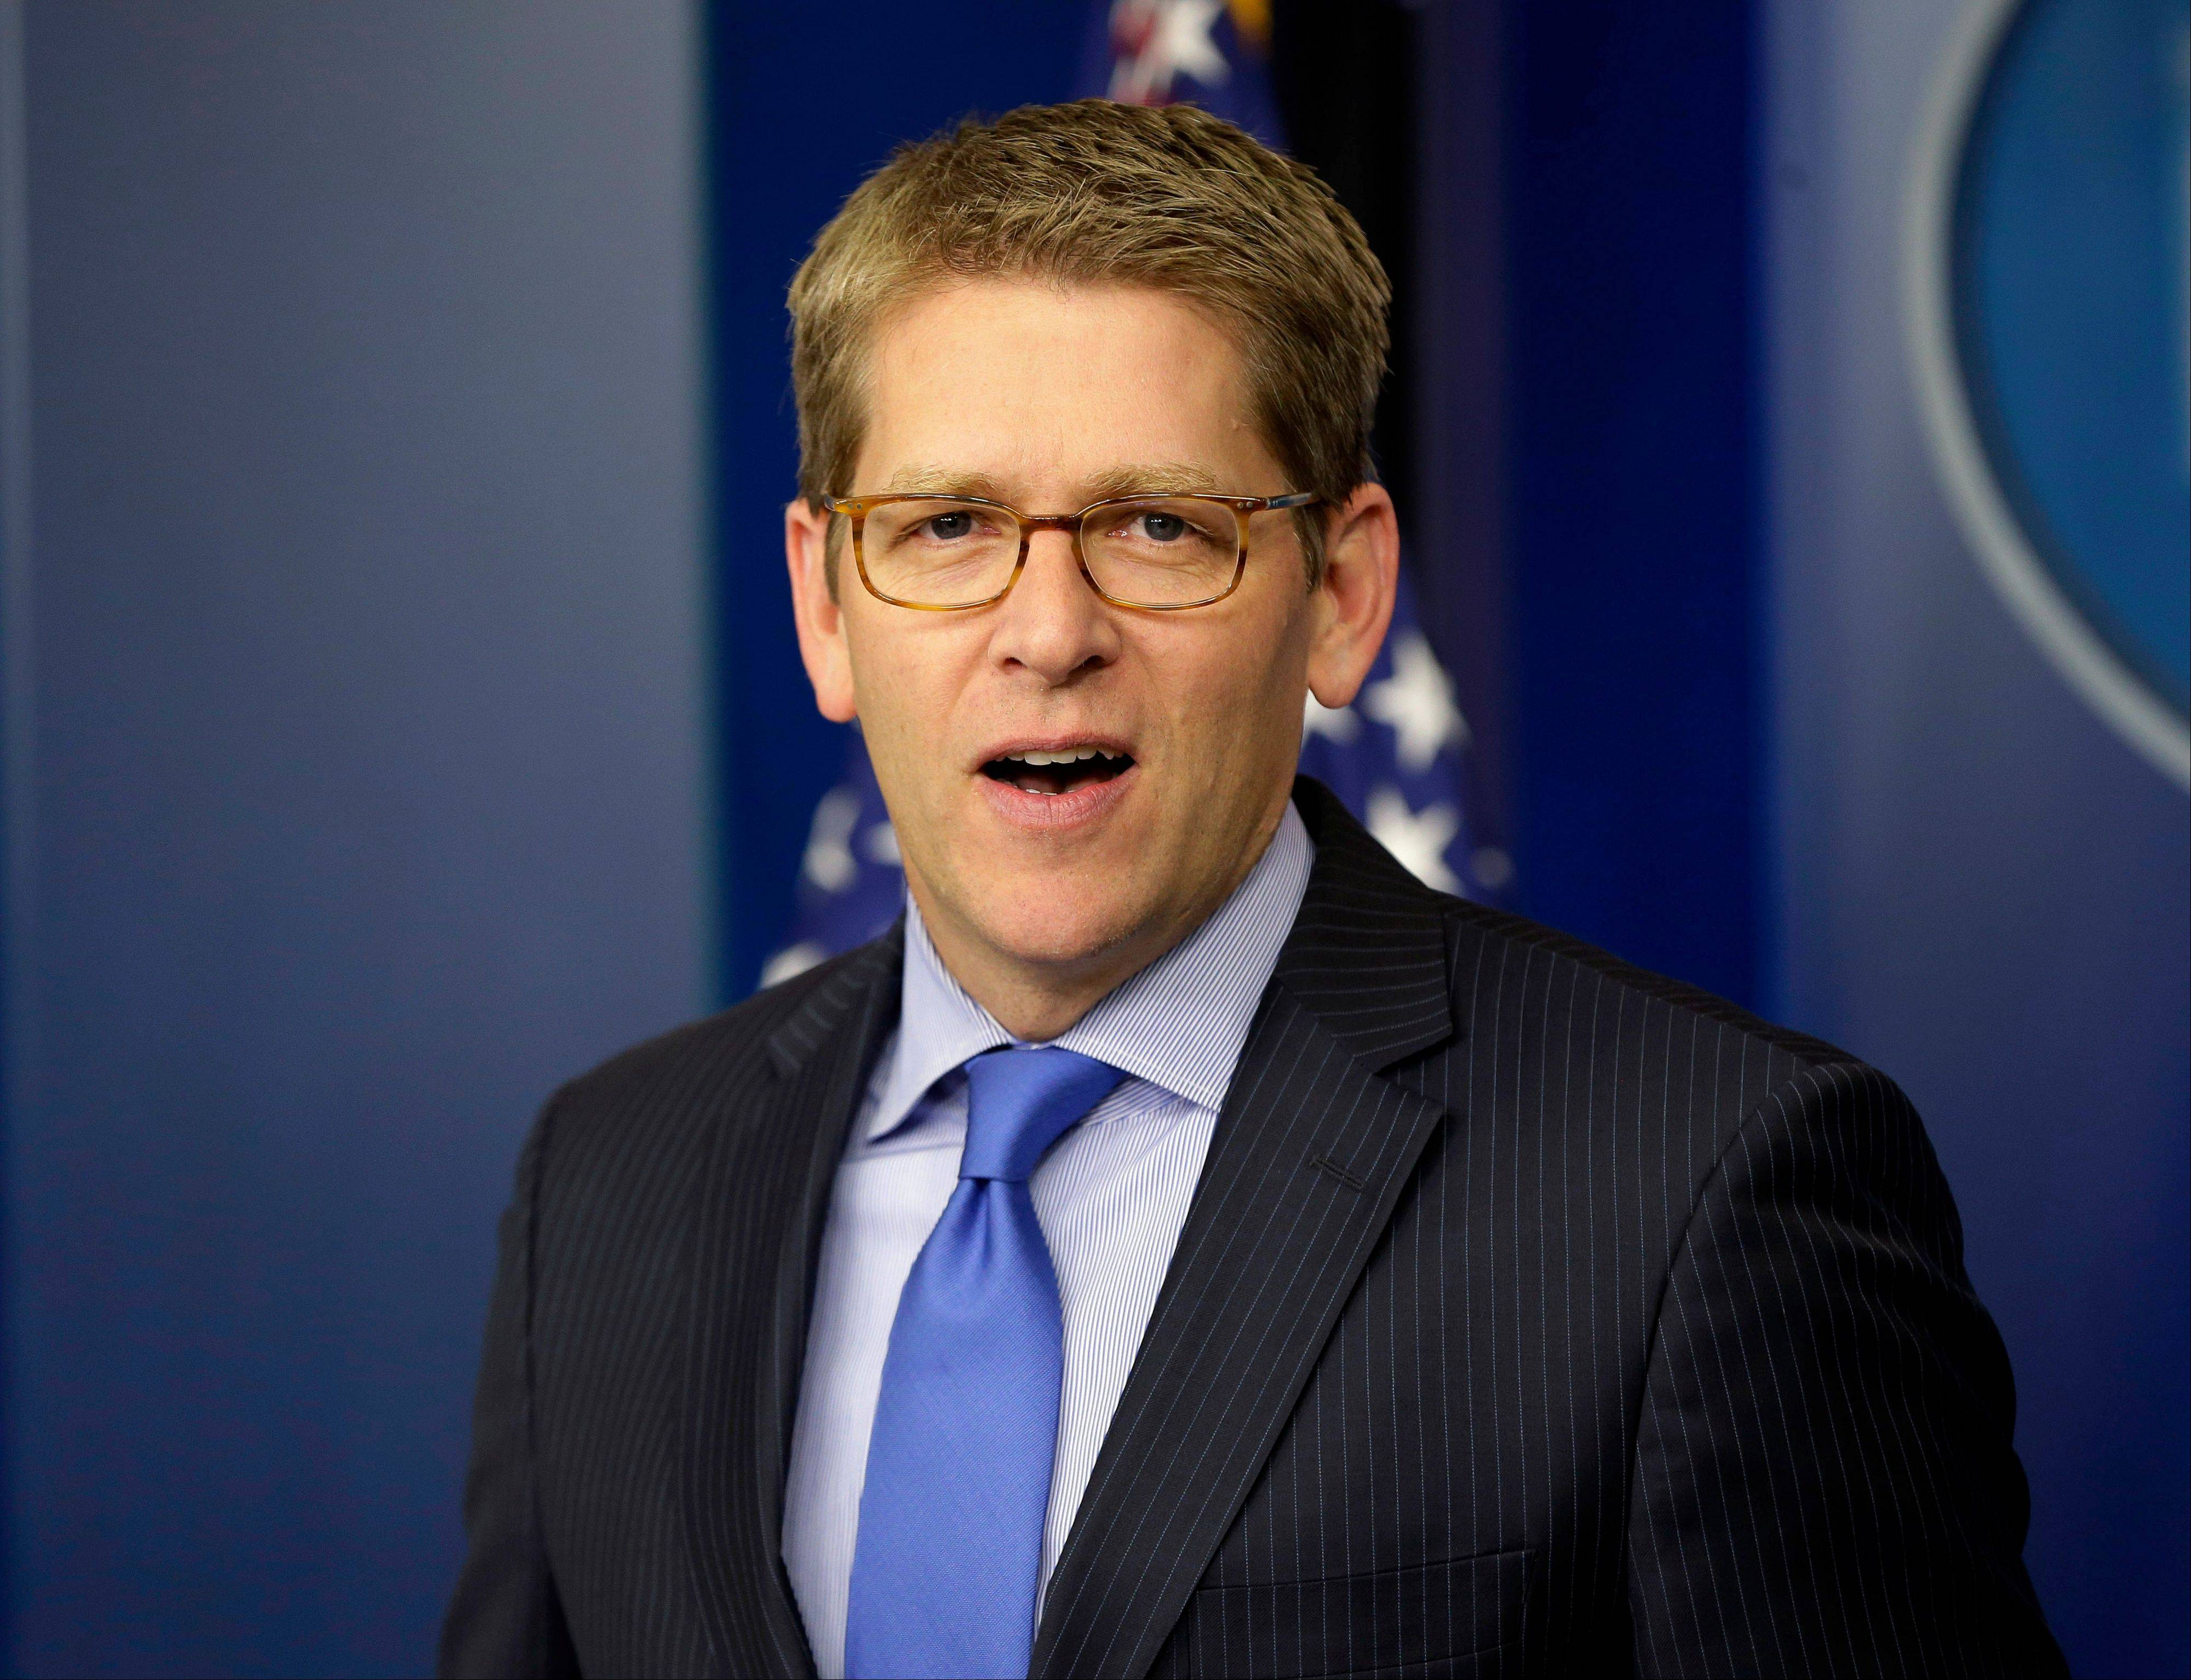 White House press secretary Jay Carney speaks during his daily news briefing at the White House in Washington. Senate Democrats are deeply divided over whether cuts to popular benefit programs like Medicare and Medicaid should be part of a plan to address the nation�s financial problems. �It is the president�s position that when we�re talking about a broad, balanced approach to dealing with our fiscal challenges, that that includes dealing with entitlements,� Carney said Tuesday.